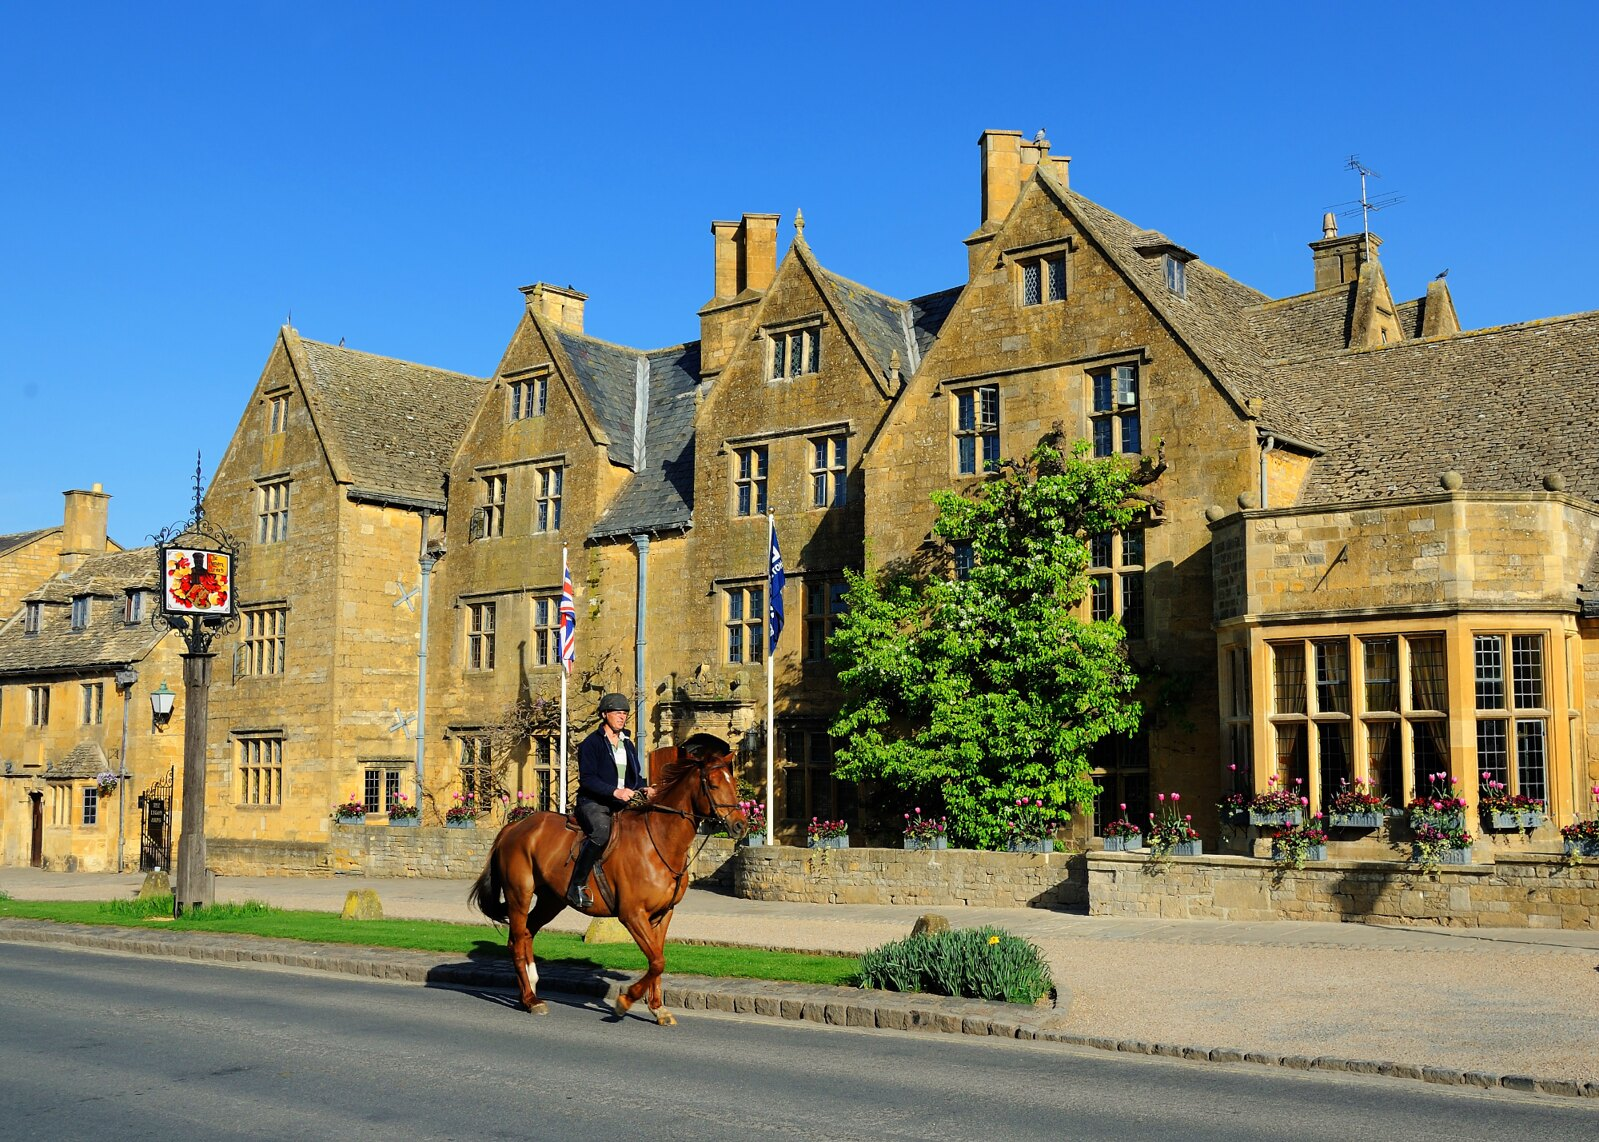 A rider passes in front of the Lygon Arms hotel in Broadway. Credit Saffron Blaze